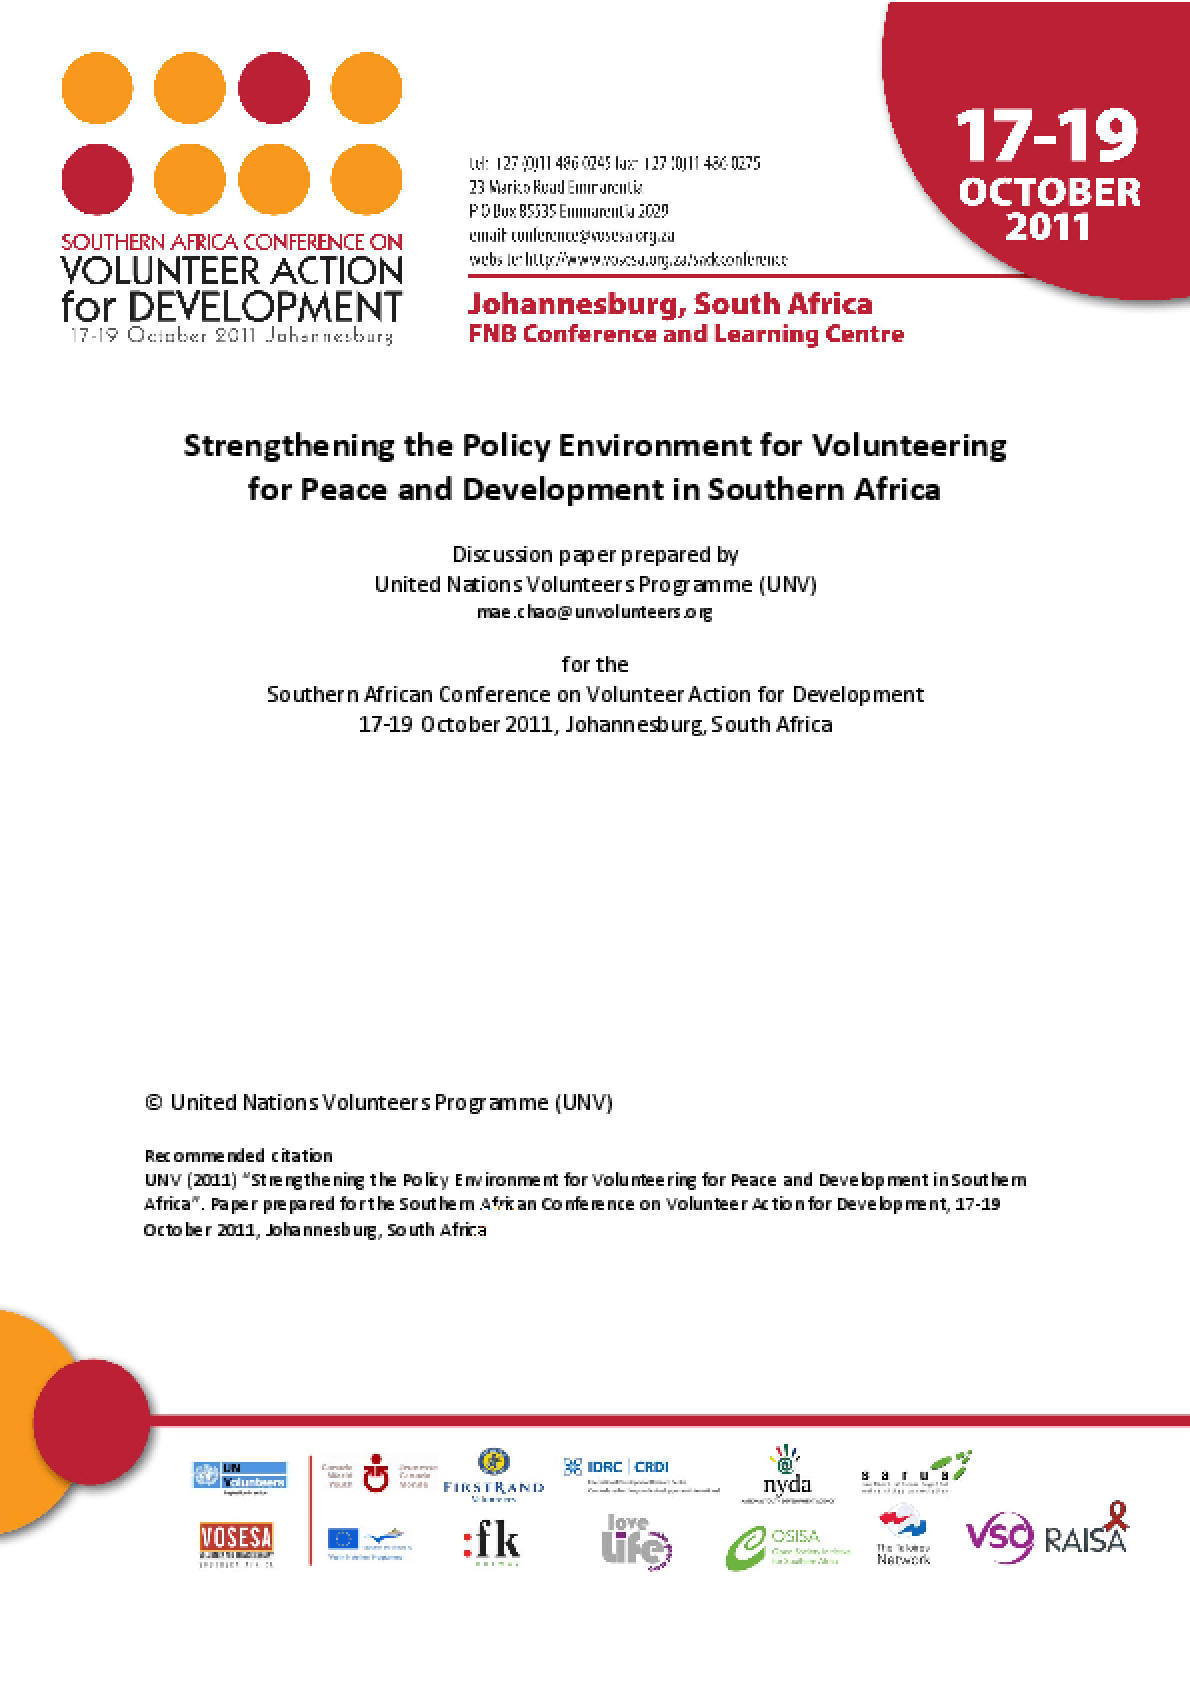 Strengthening the Policy Environment for Volunteering for Peace and Development in Southern Africa